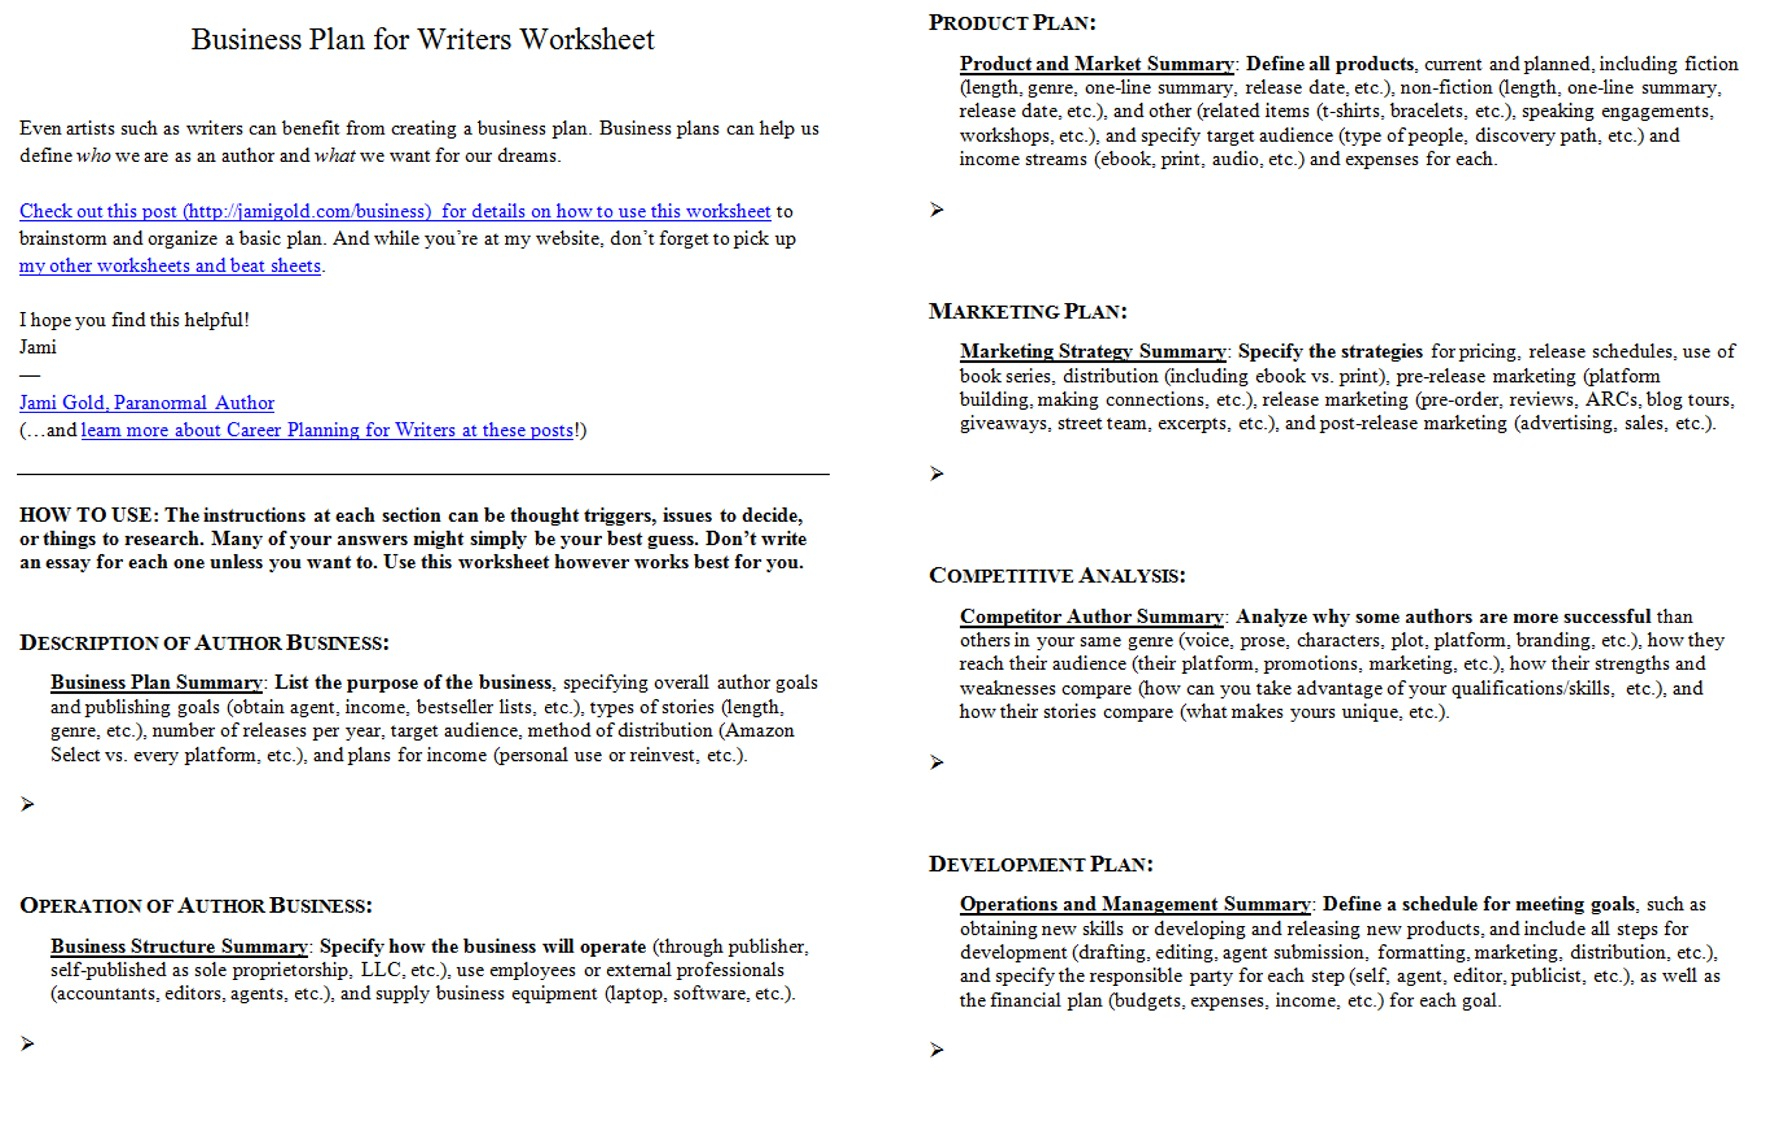 Aldiablosus  Outstanding Worksheets For Writers  Jami Gold Paranormal Author With Extraordinary Screen Shot Of Both Pages Of The Business Plan For Writers Worksheet With Cool Personal Financial Statement Worksheet Also Letter F Worksheets For Preschool In Addition Rename Worksheet Excel And Arithmetic Recursive And Explicit Worksheet As Well As Preschool Addition Worksheets Additionally Multiplication Worksheets Th Grade From Jamigoldcom With Aldiablosus  Extraordinary Worksheets For Writers  Jami Gold Paranormal Author With Cool Screen Shot Of Both Pages Of The Business Plan For Writers Worksheet And Outstanding Personal Financial Statement Worksheet Also Letter F Worksheets For Preschool In Addition Rename Worksheet Excel From Jamigoldcom